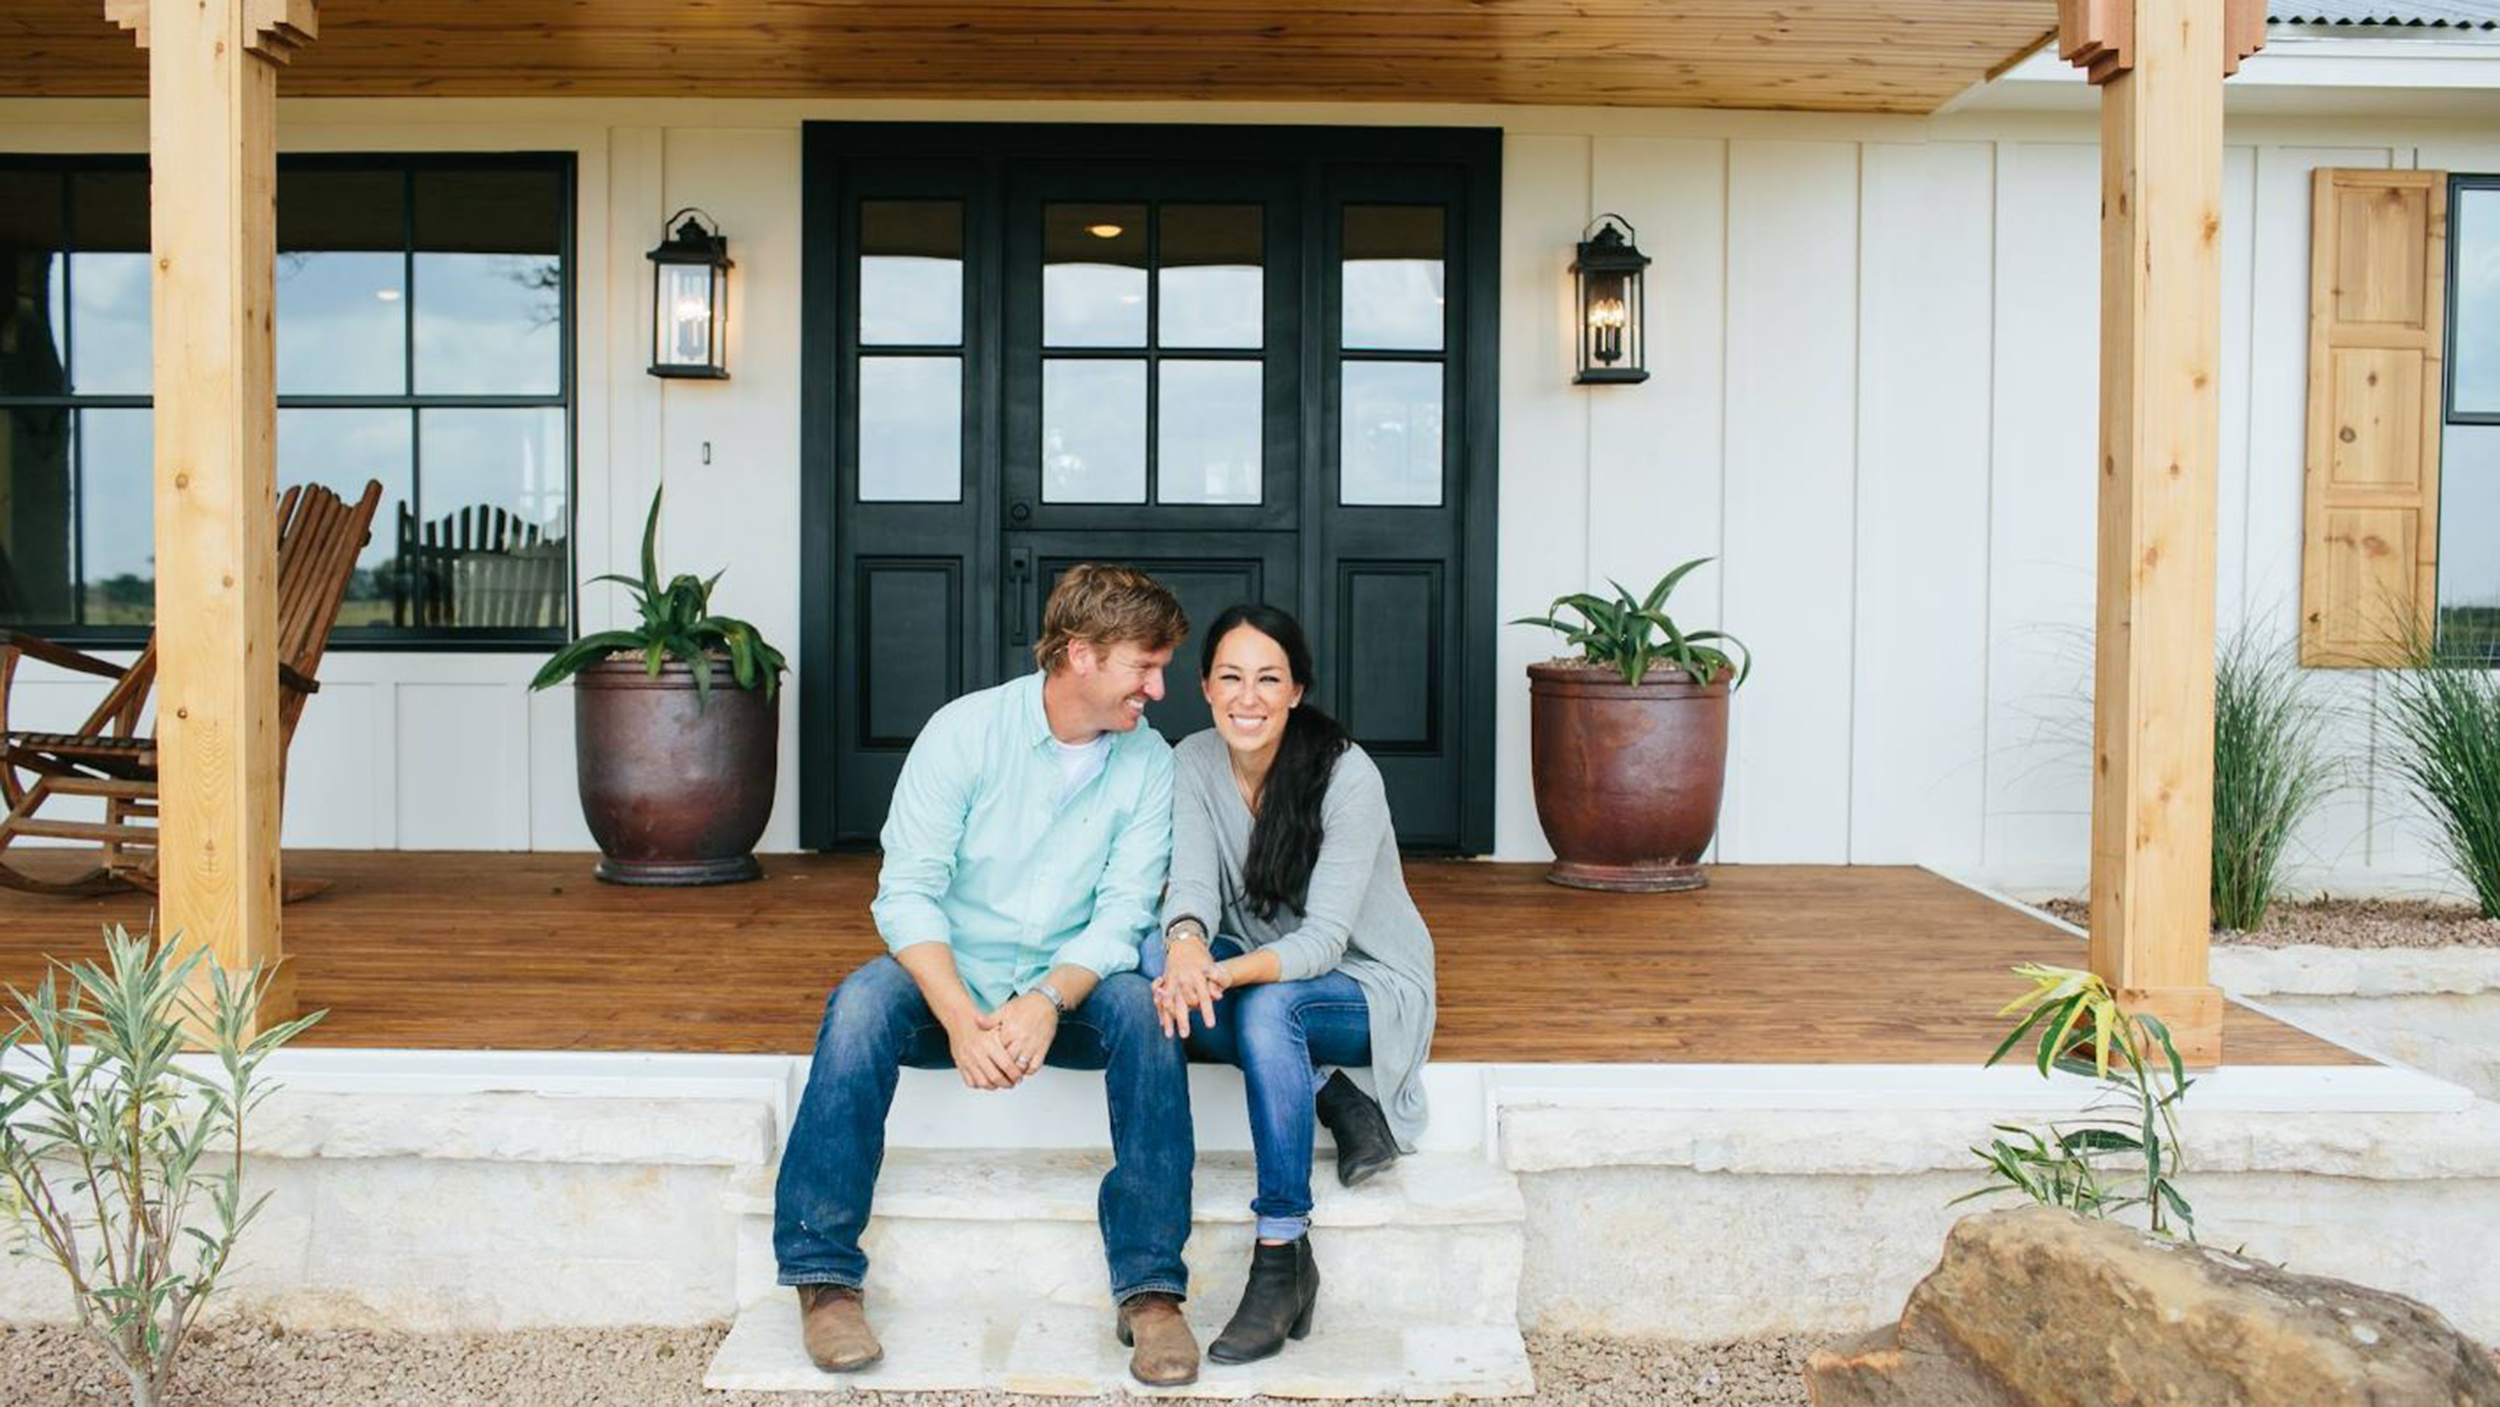 Joanna gaines from 39 fixer upper 39 spills secrets about Home architecture tv show